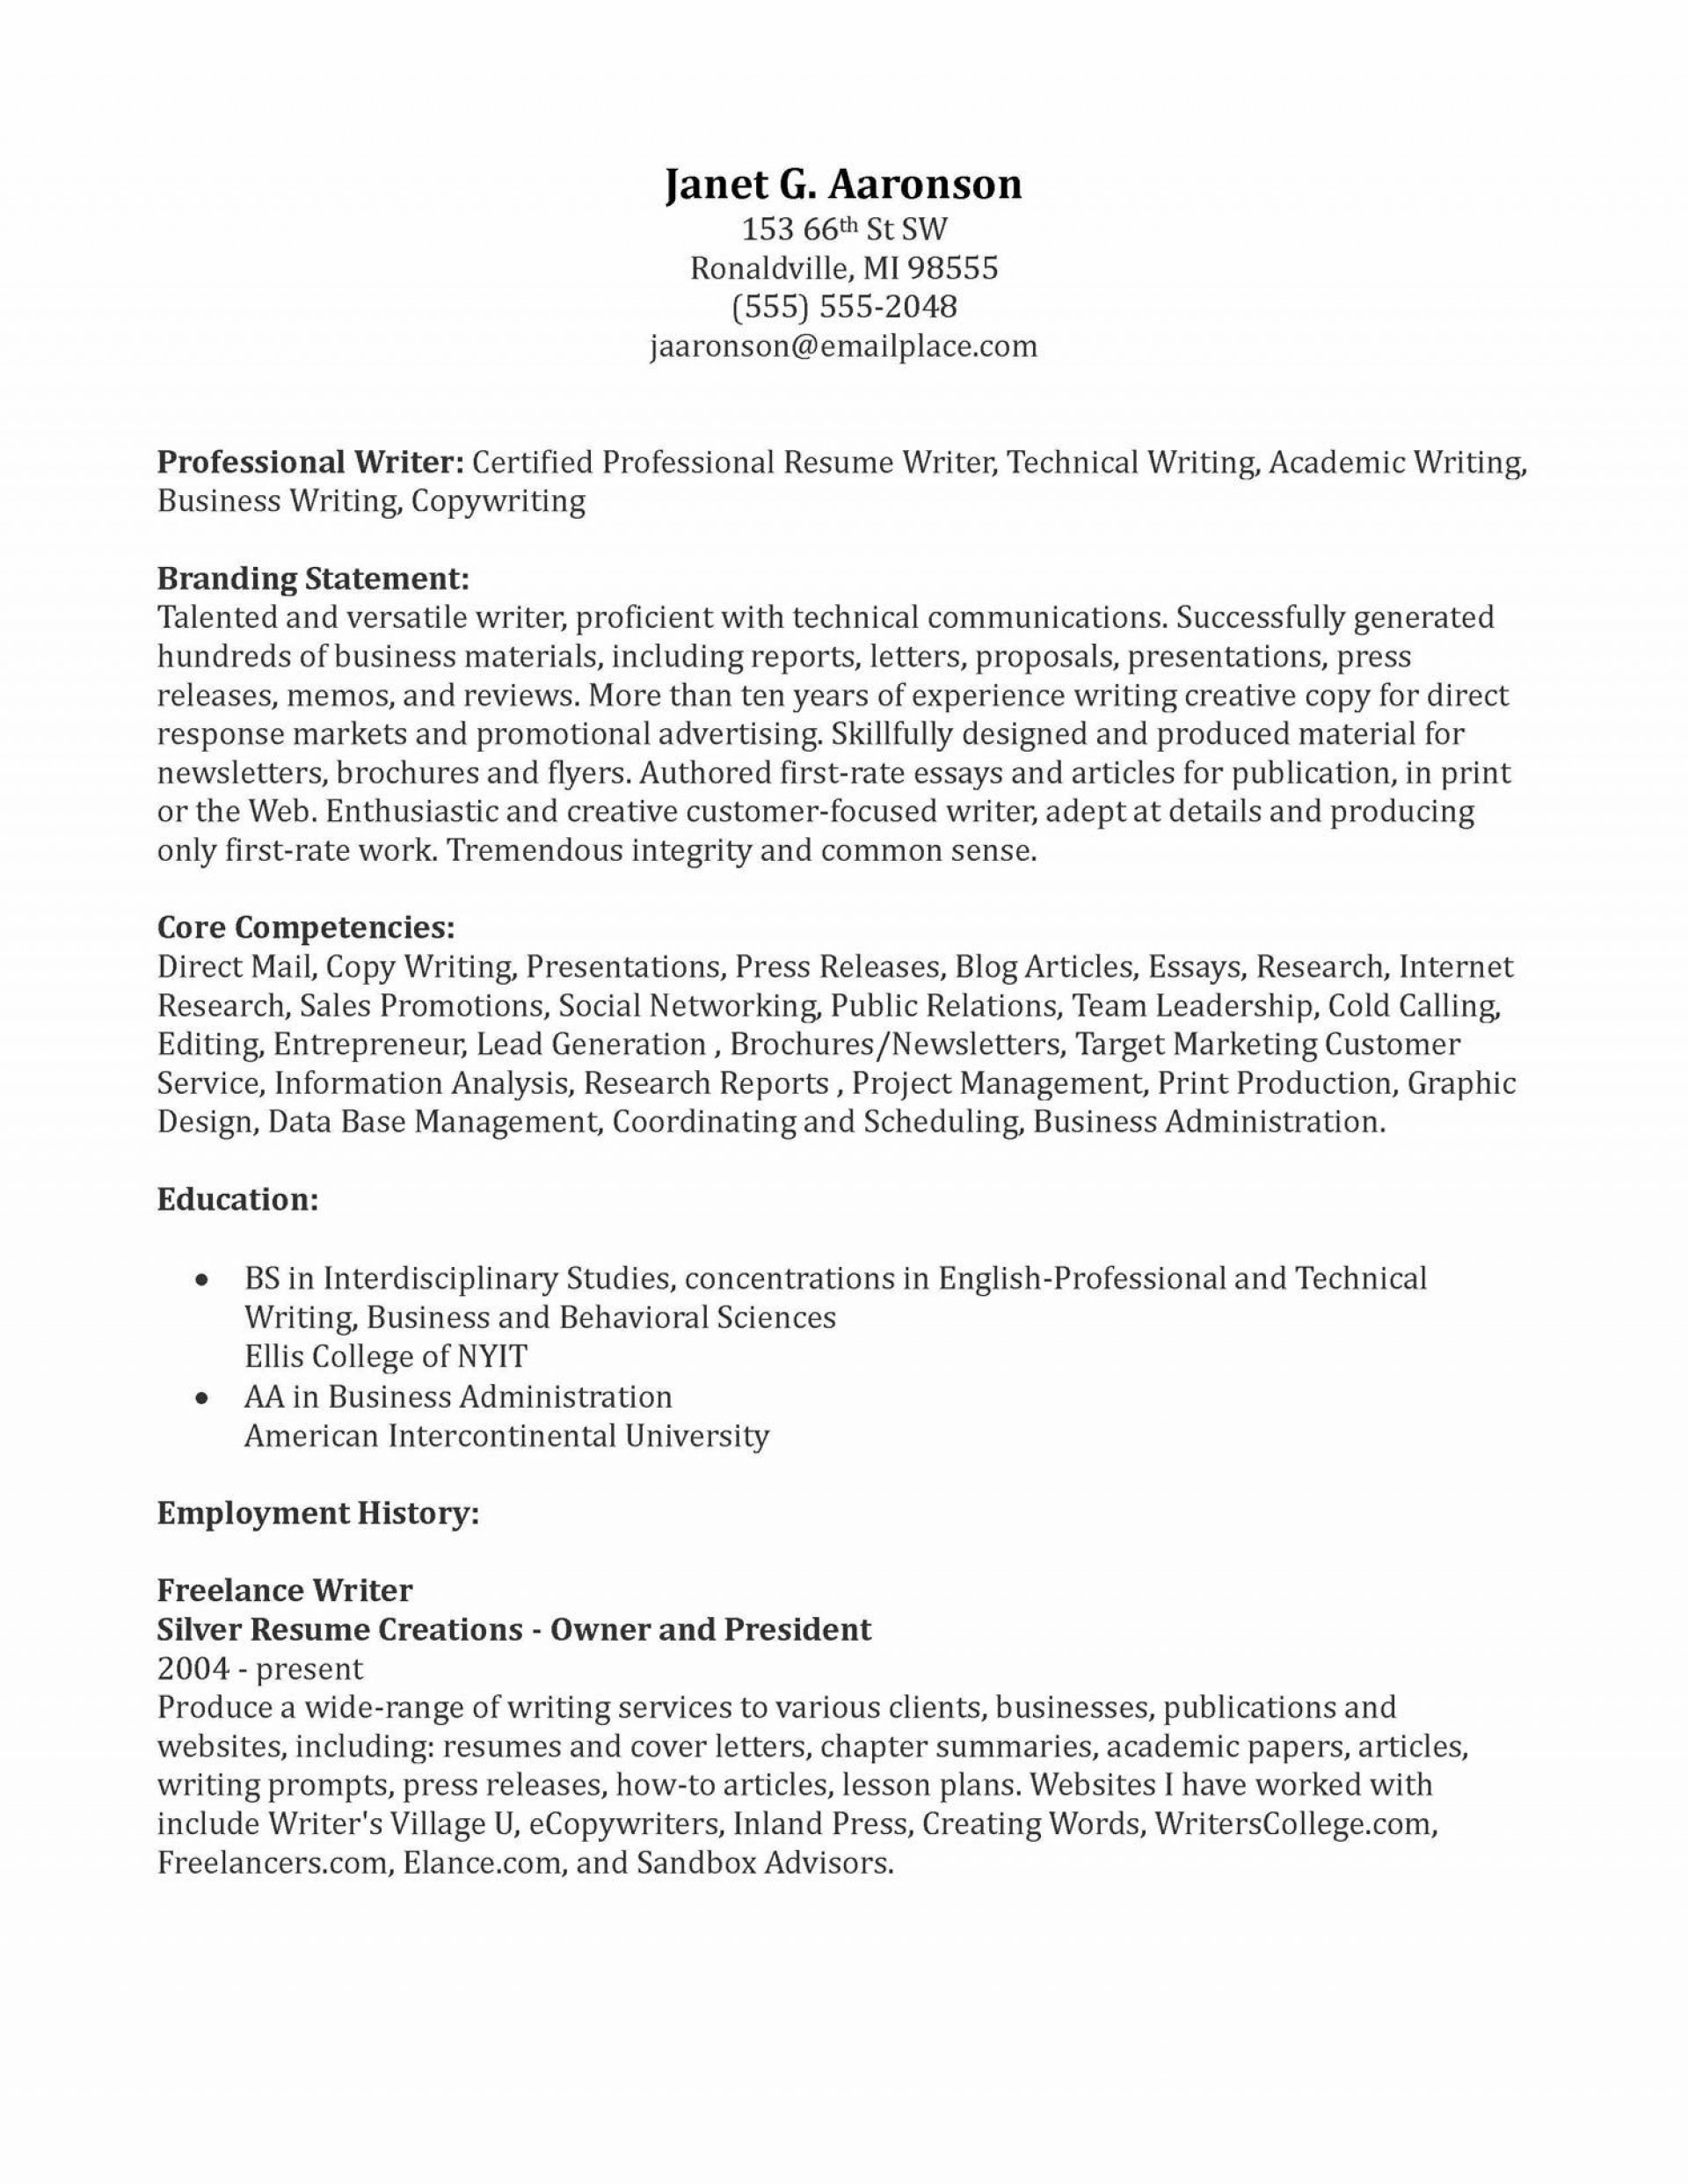 006 Academic Essays Line Writing Freelance Professional Cv